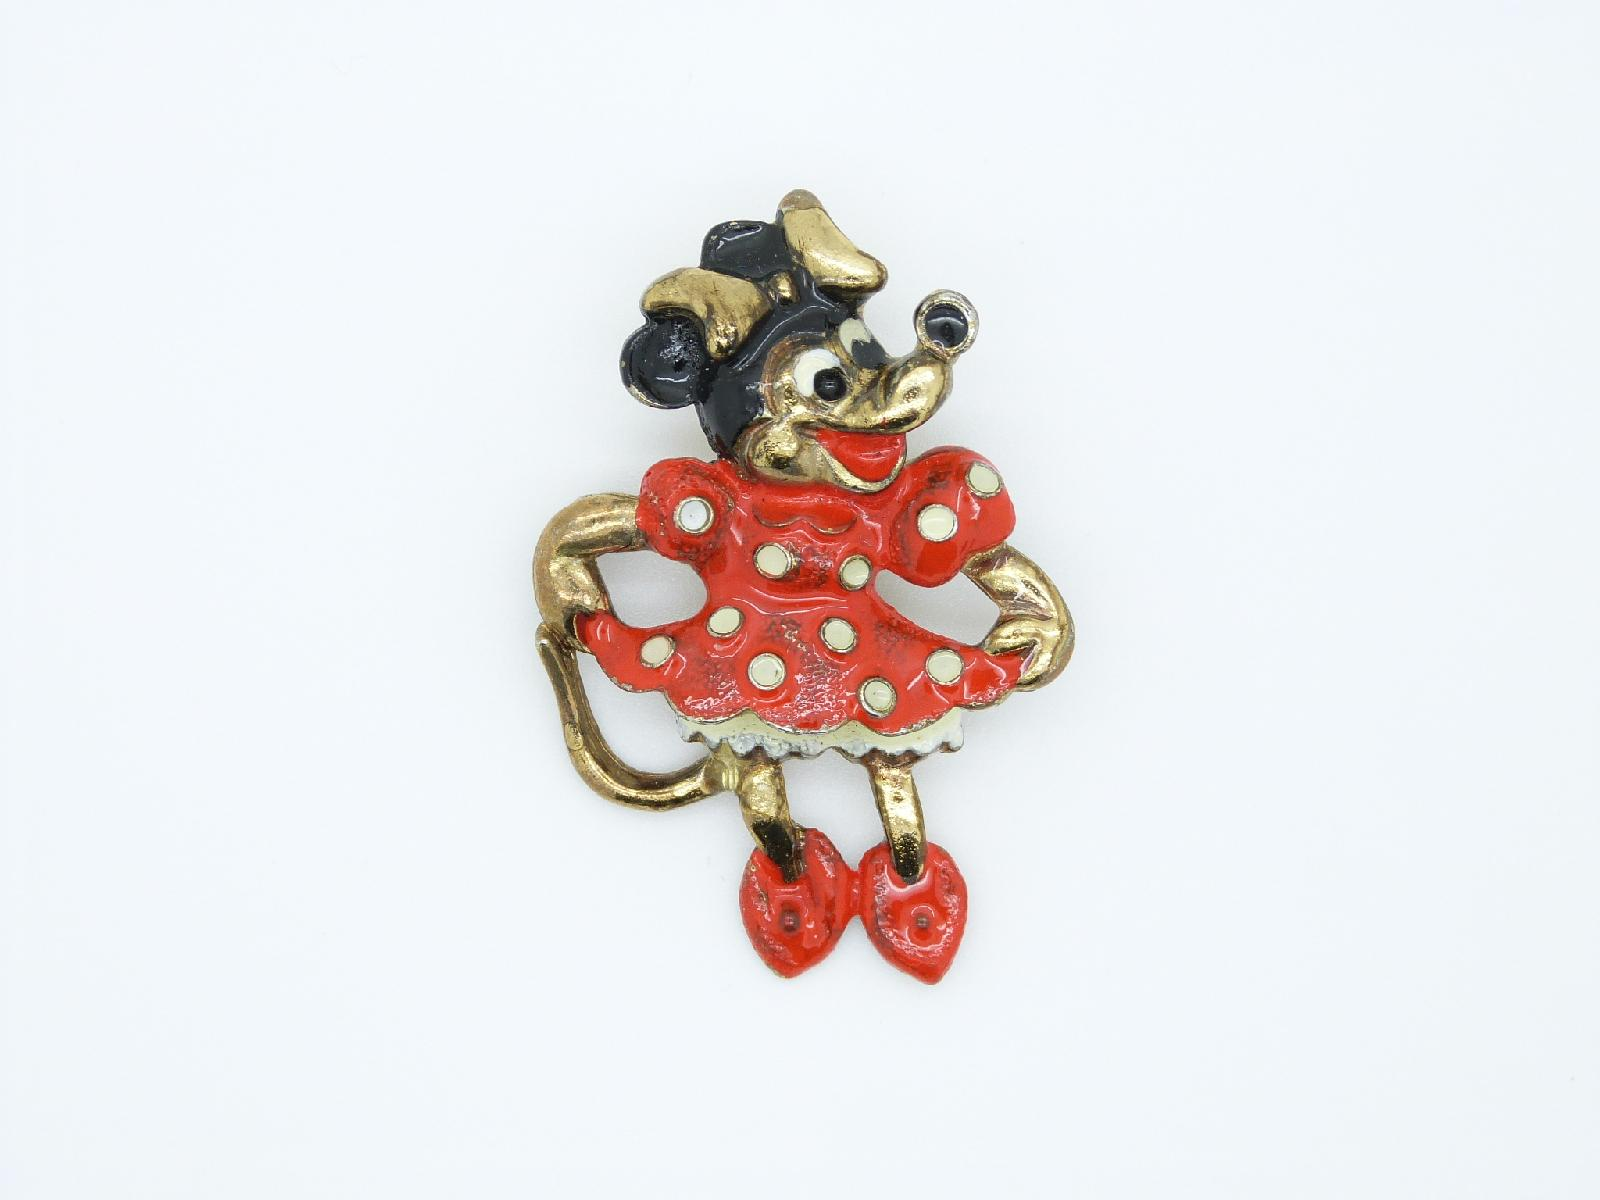 Vintage 80s Walt Disney Minnie Mouse Enamel Brooch Super Cute!